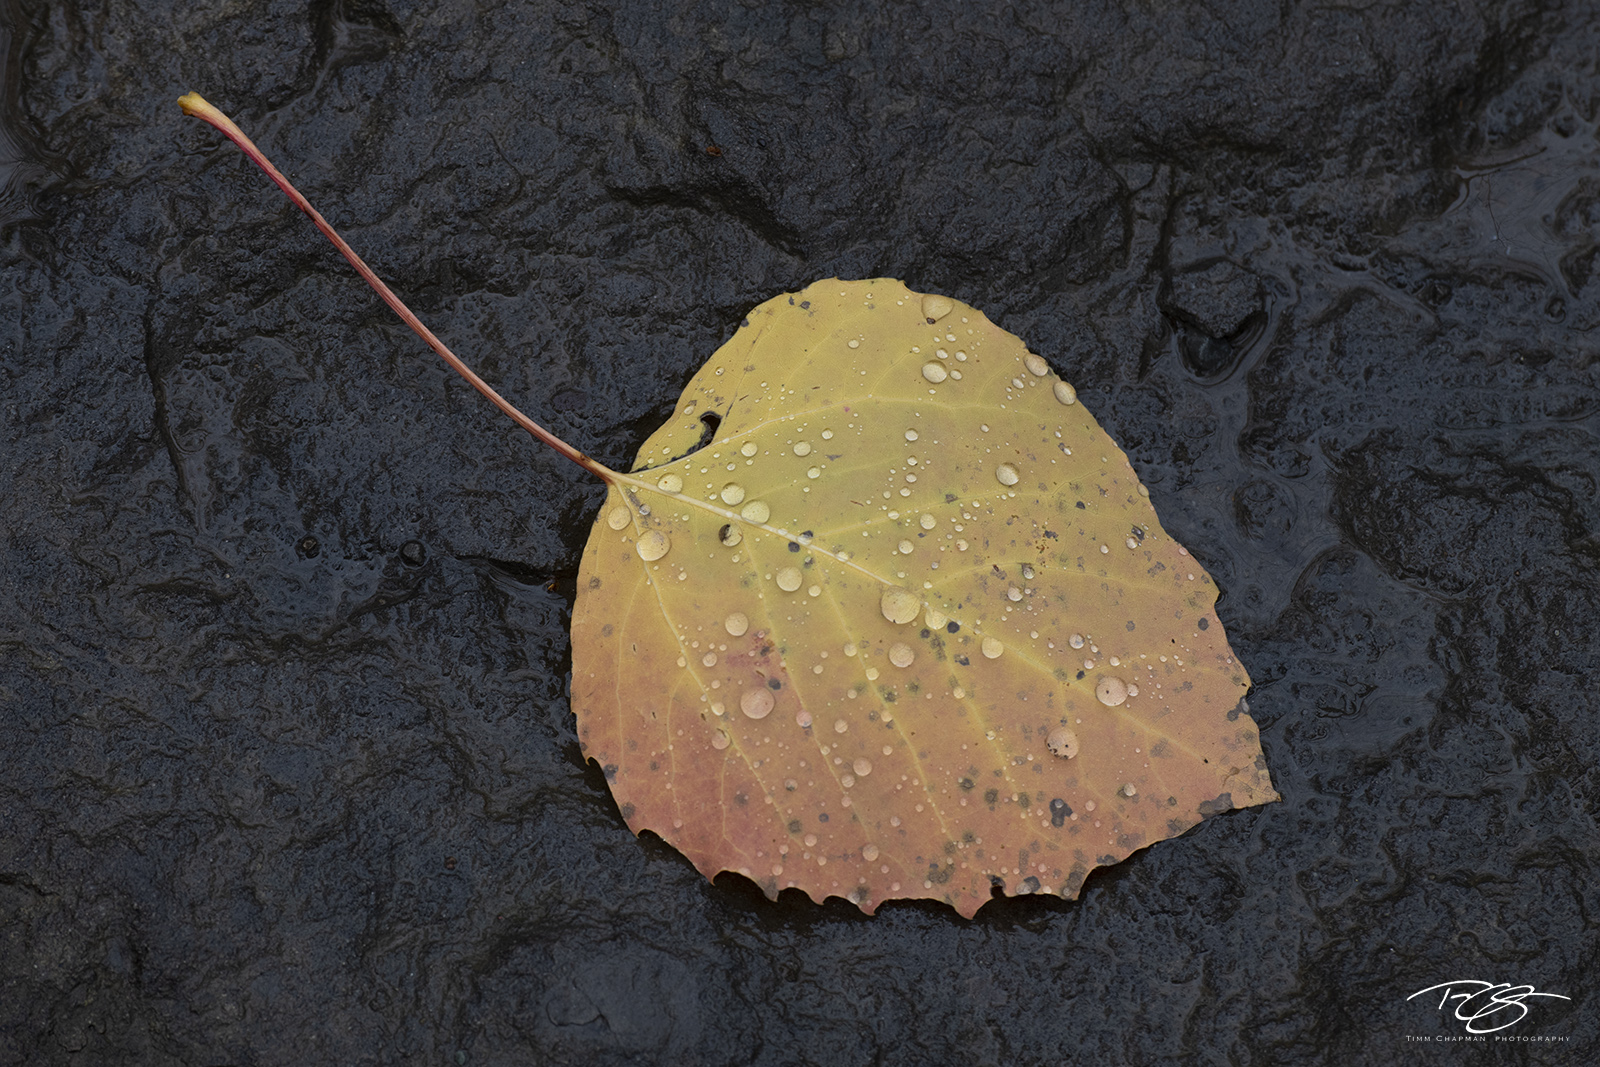 autumn, fall, colour, colours, color, colors, leaves, new england, baxter state park, maine, quaking aspen, aspen, leaf, water droplets, beading, black rock, wet, photo